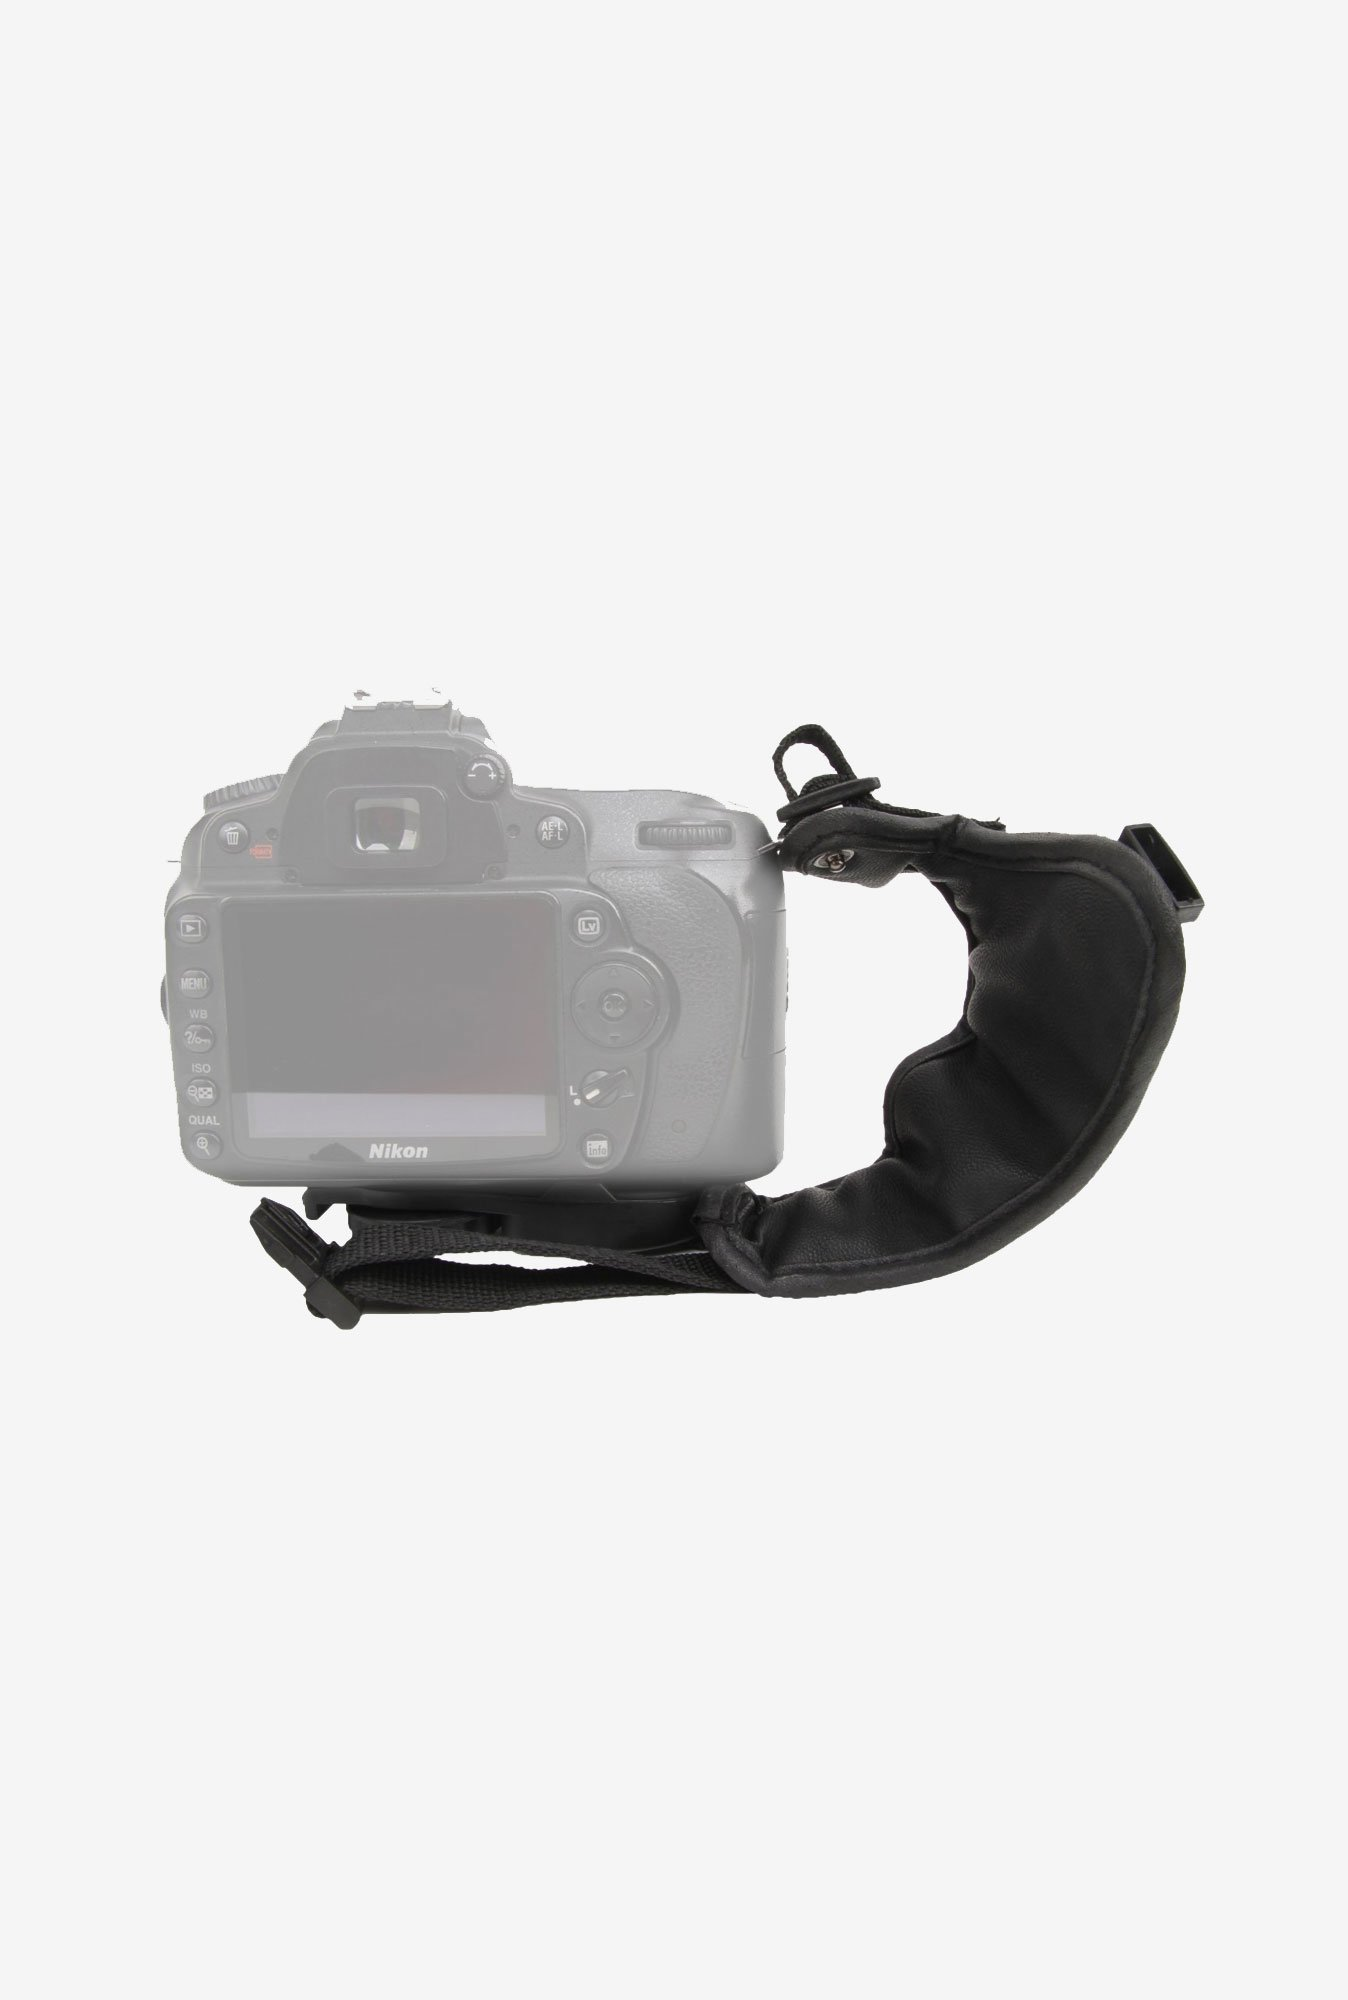 Movo Photo HSG-8 DualStrap-DLX Padded Wrist and Grip Strap